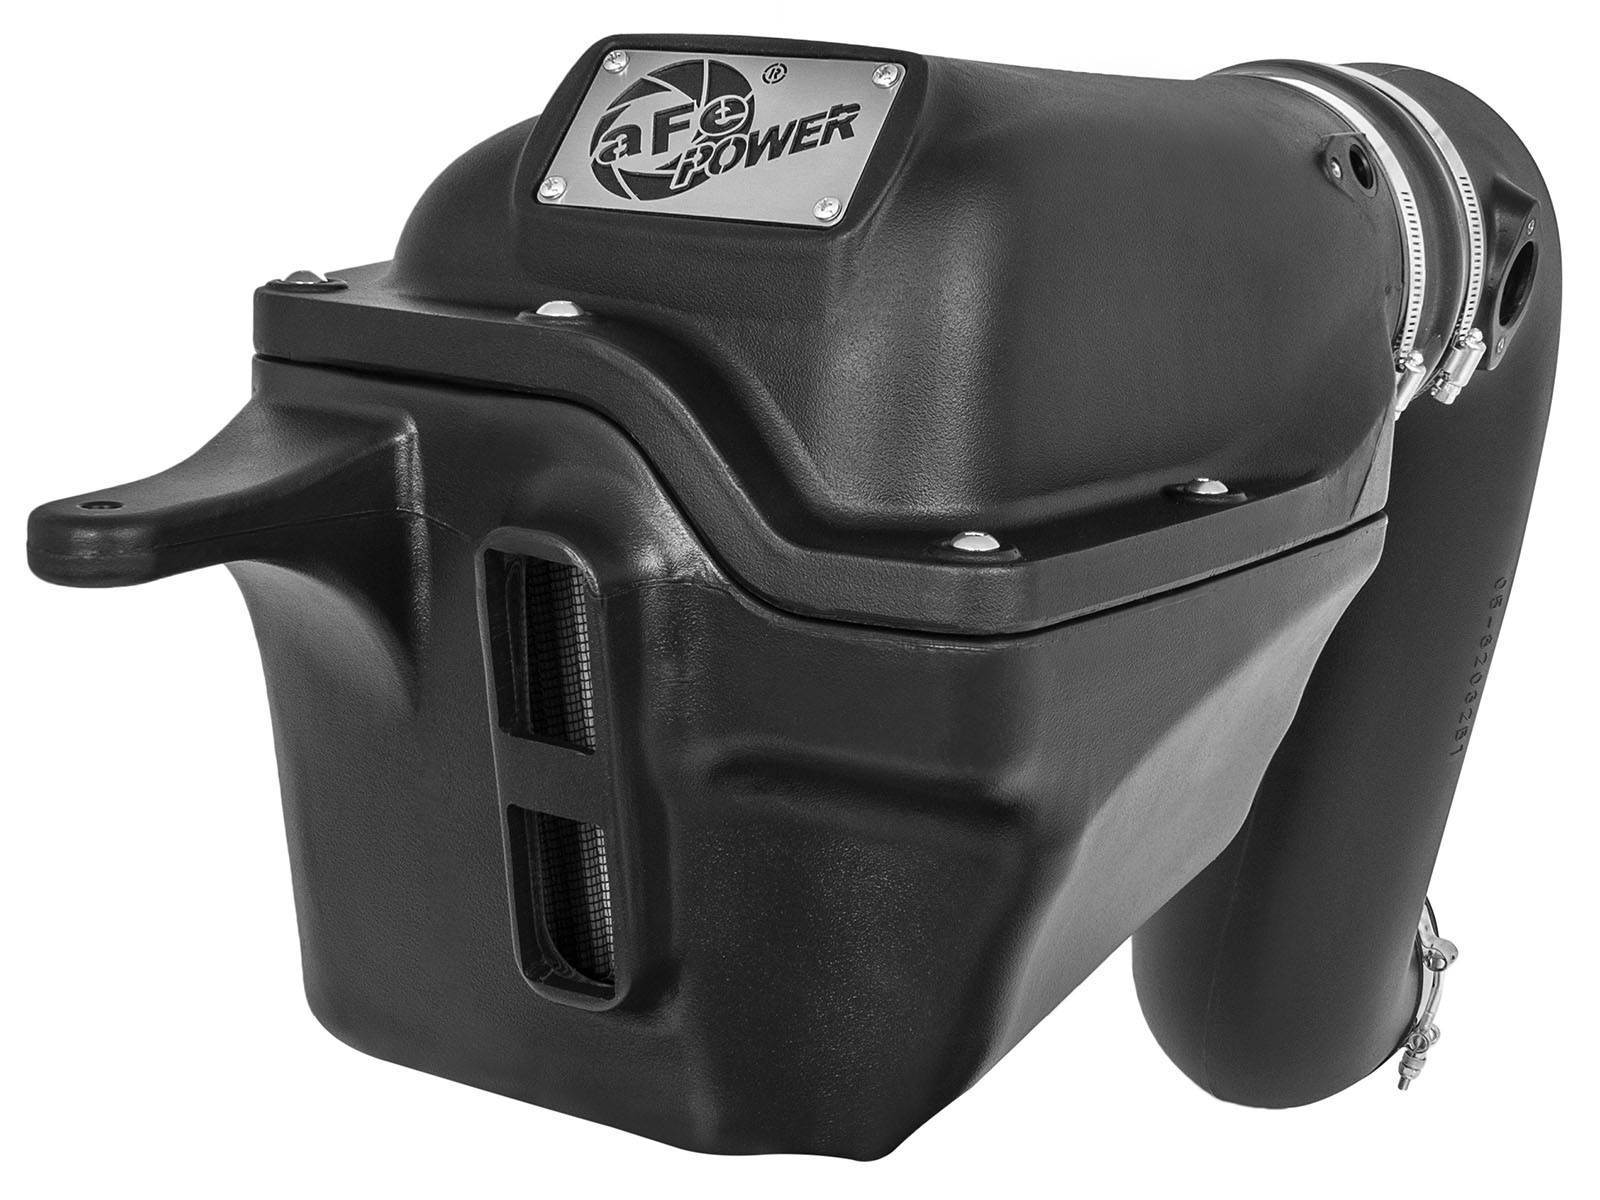 51-82032 - aFE Type Si Pro Dry S Performance Cold Air Intake System for 2010-2012 Dodge Cummins 6.7L diesels